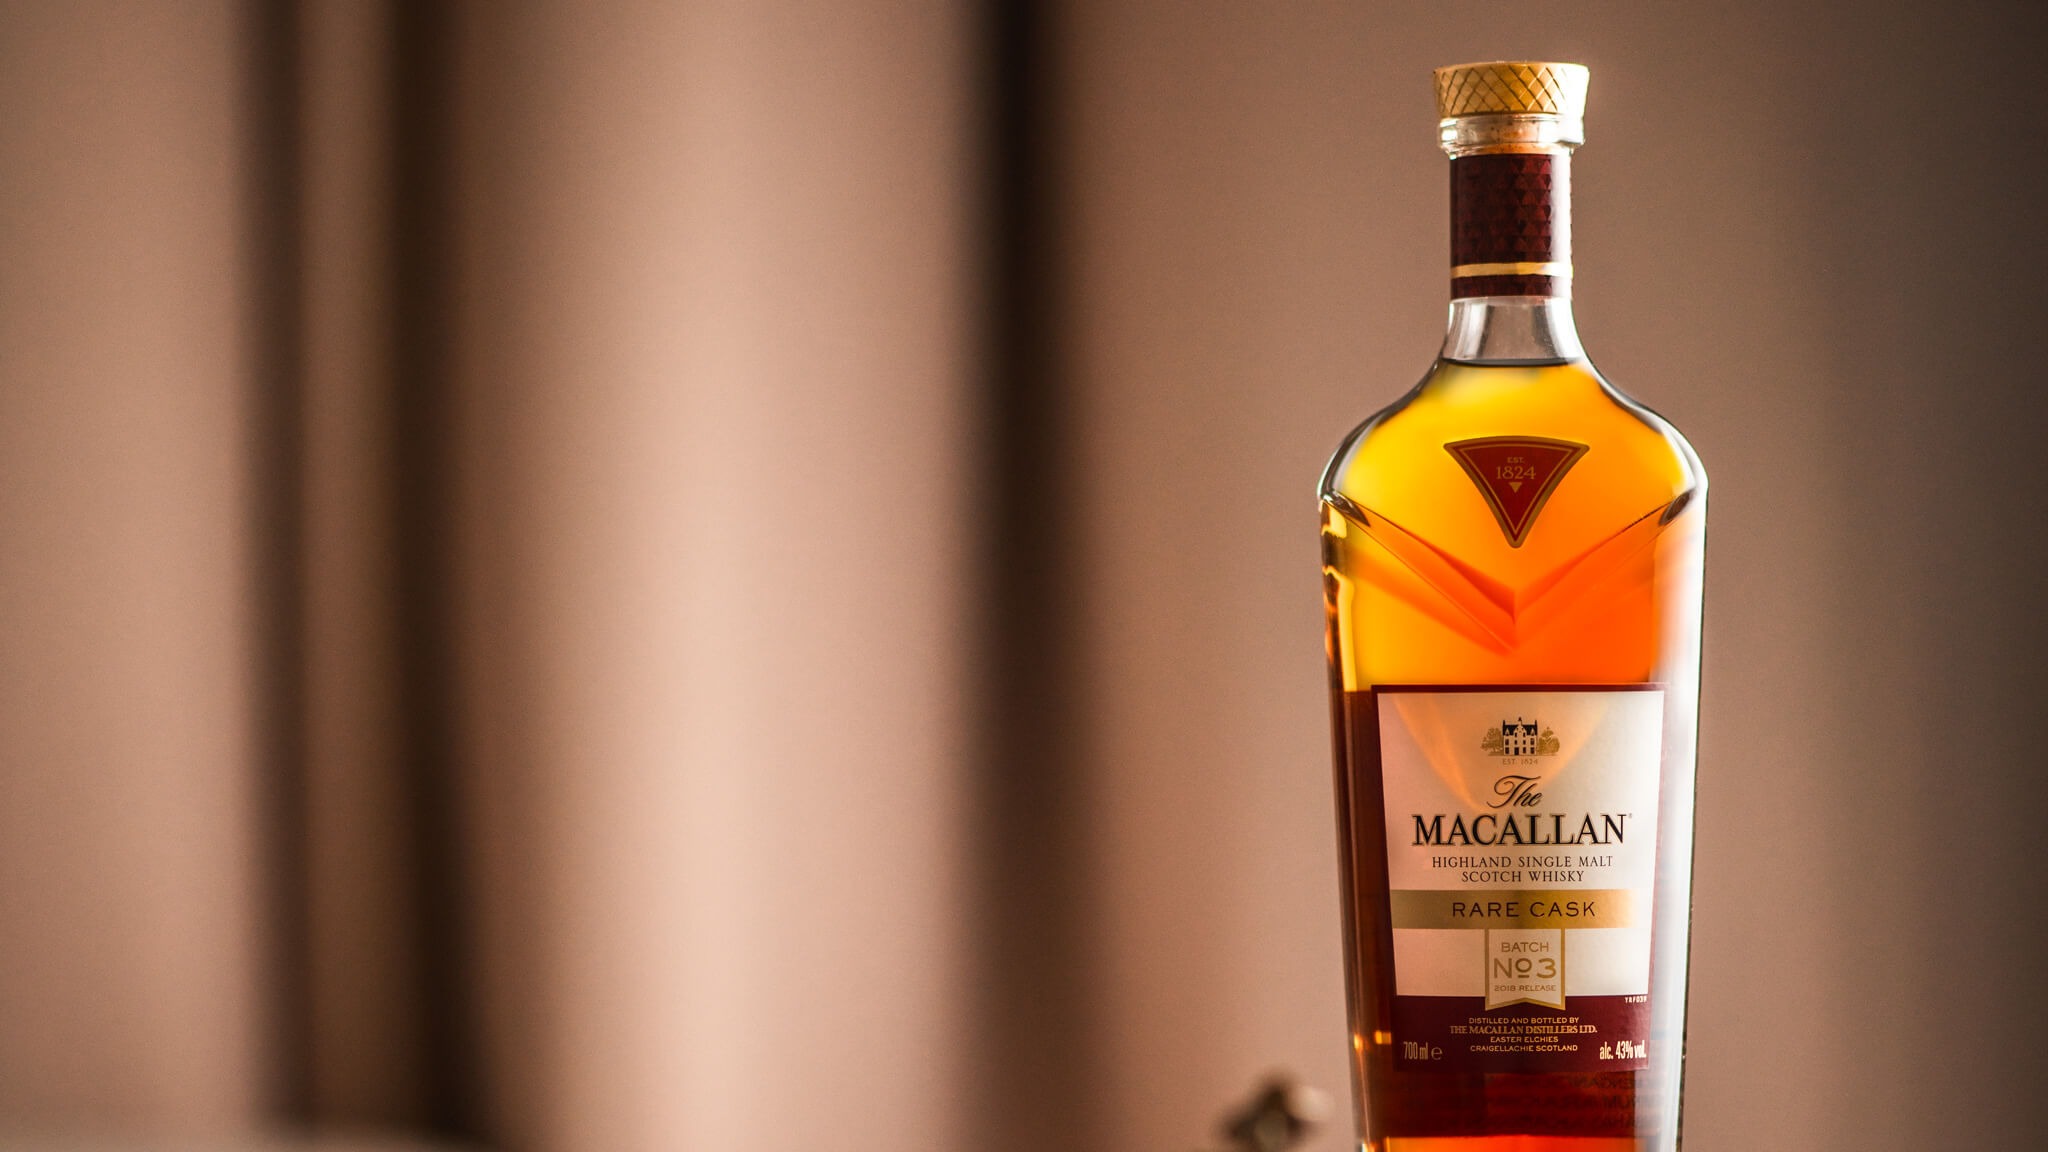 How to add a beautiful backlit glow when photographing bottles